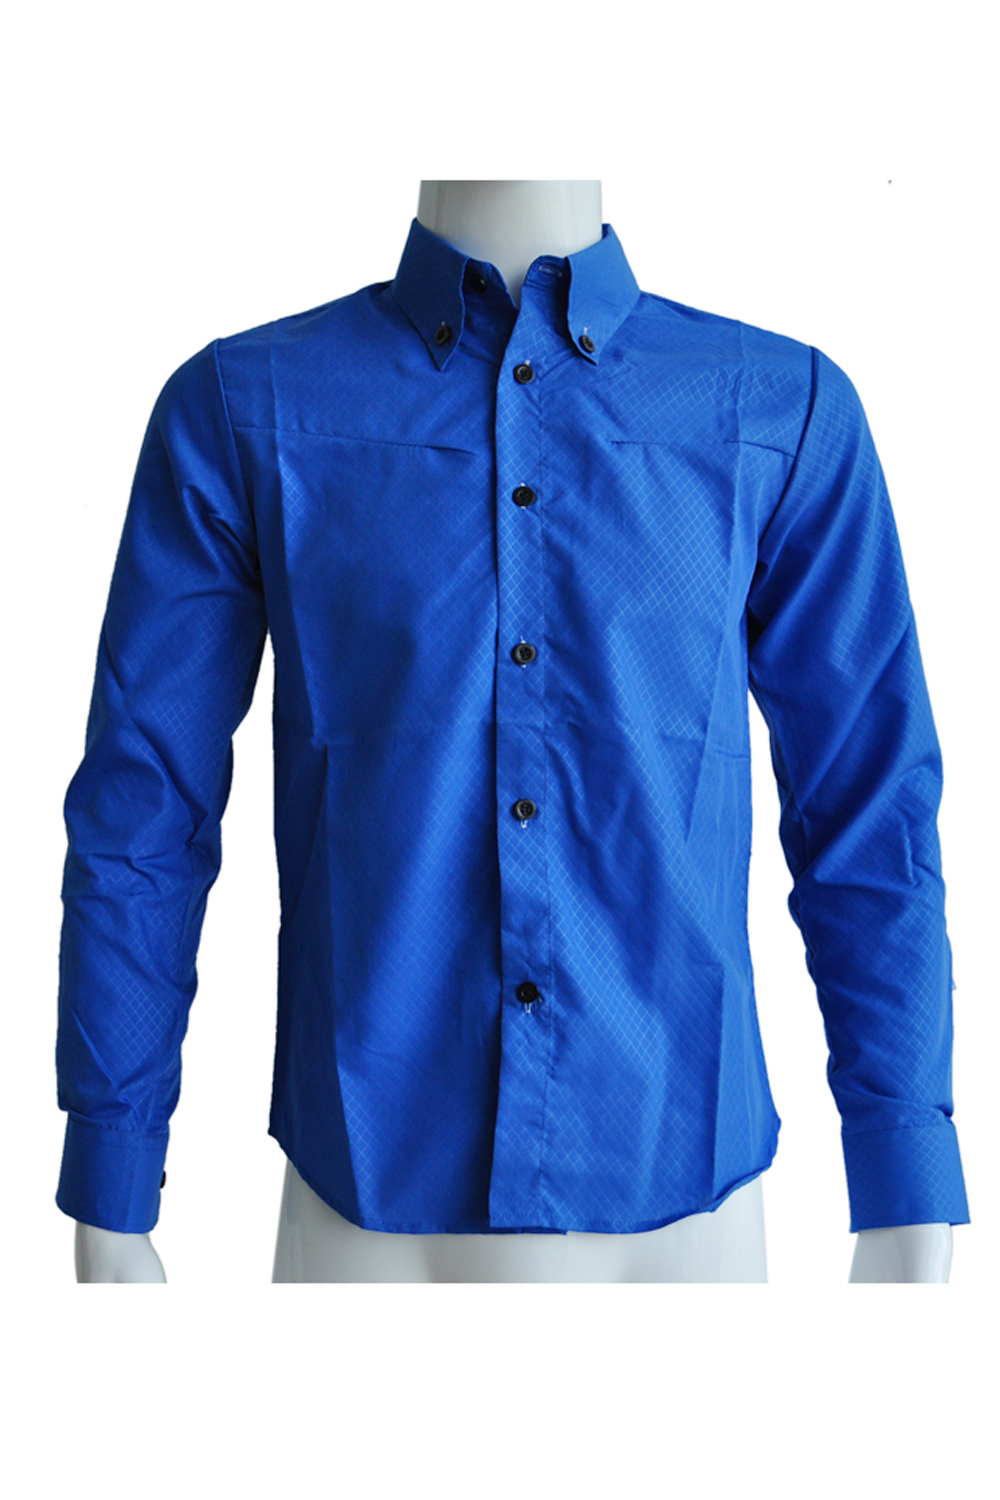 Blue Royal dress shirts for men 2019